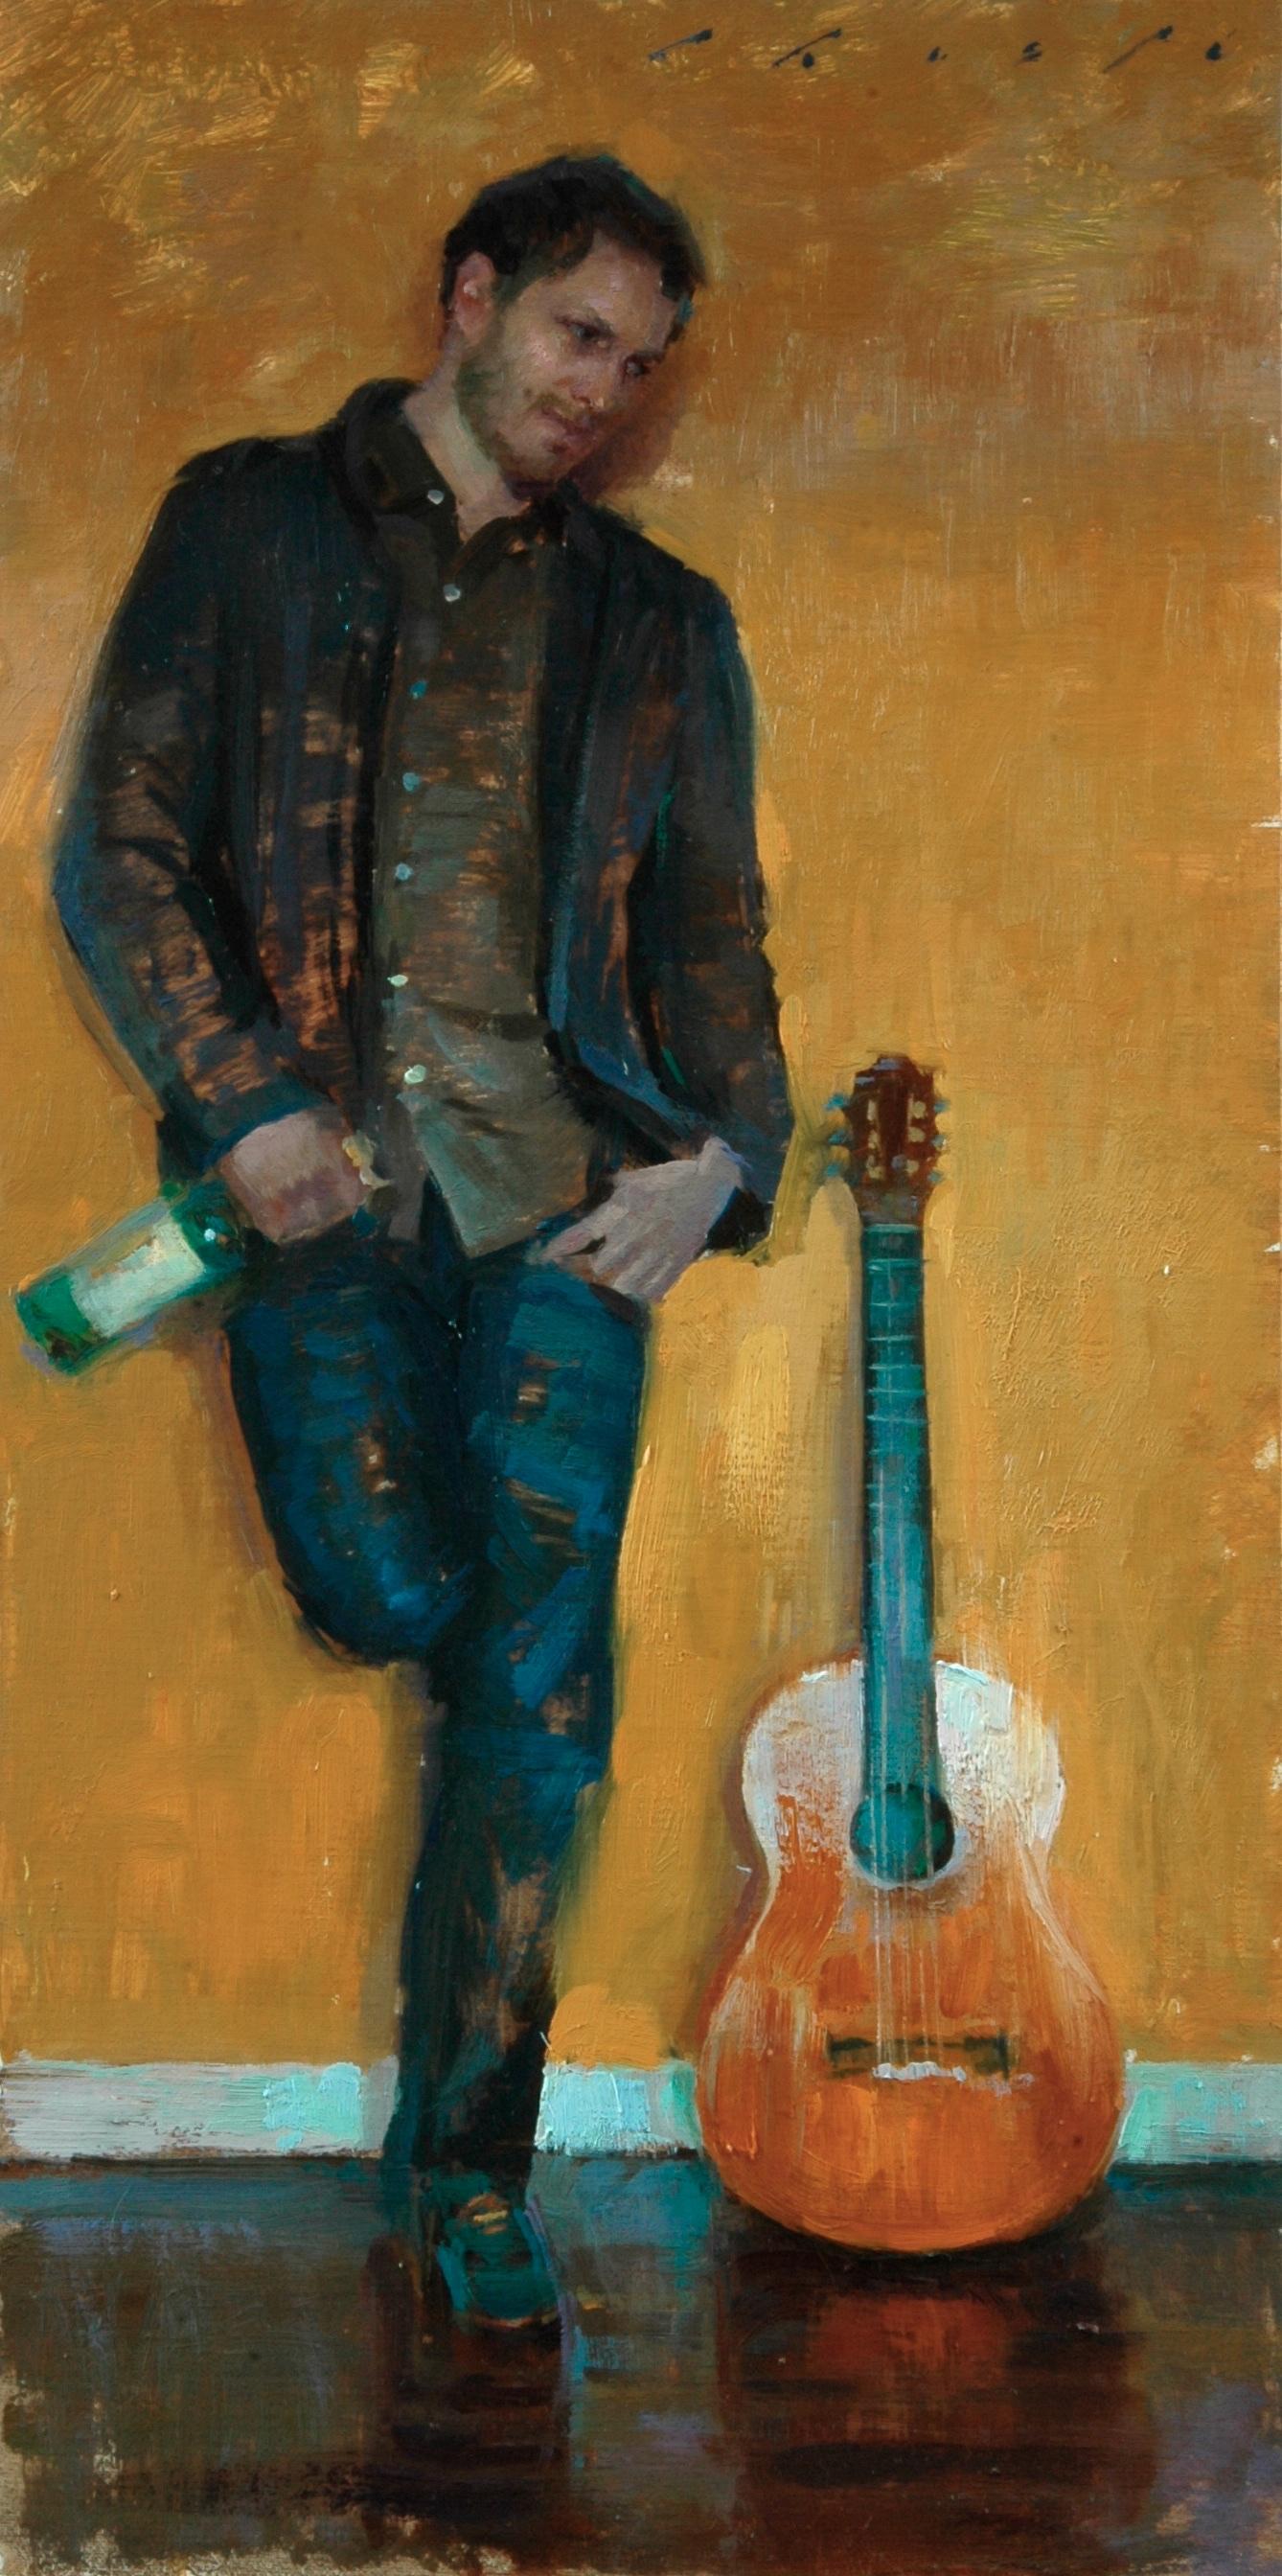 """The Musician""   10 x 20 inches"